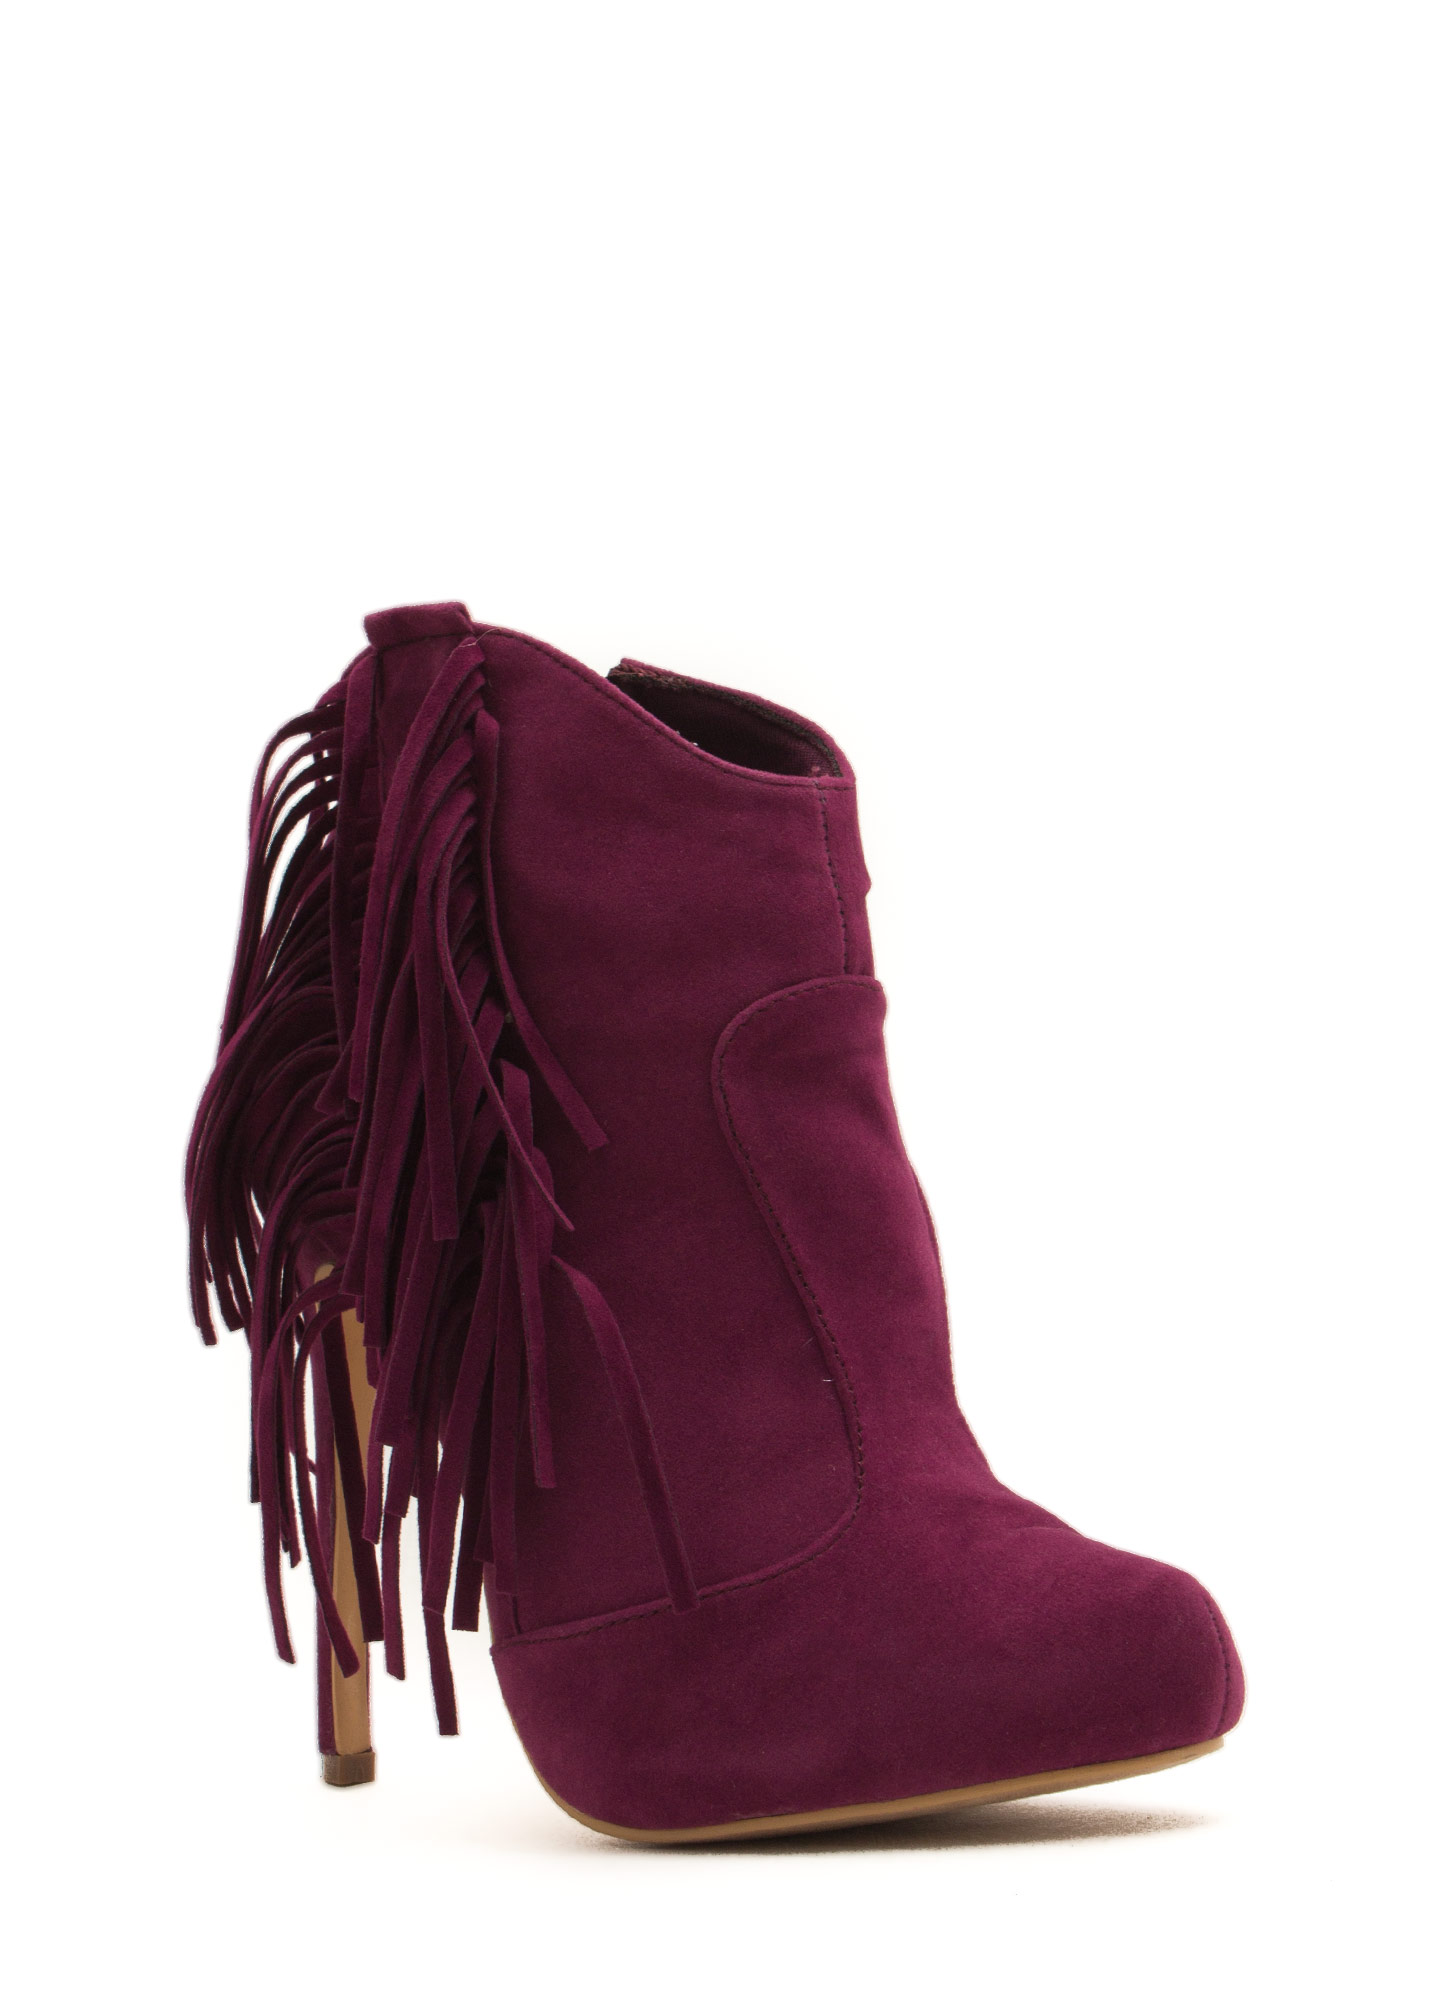 Fringe With Benefits Stiletto Booties PURPLE